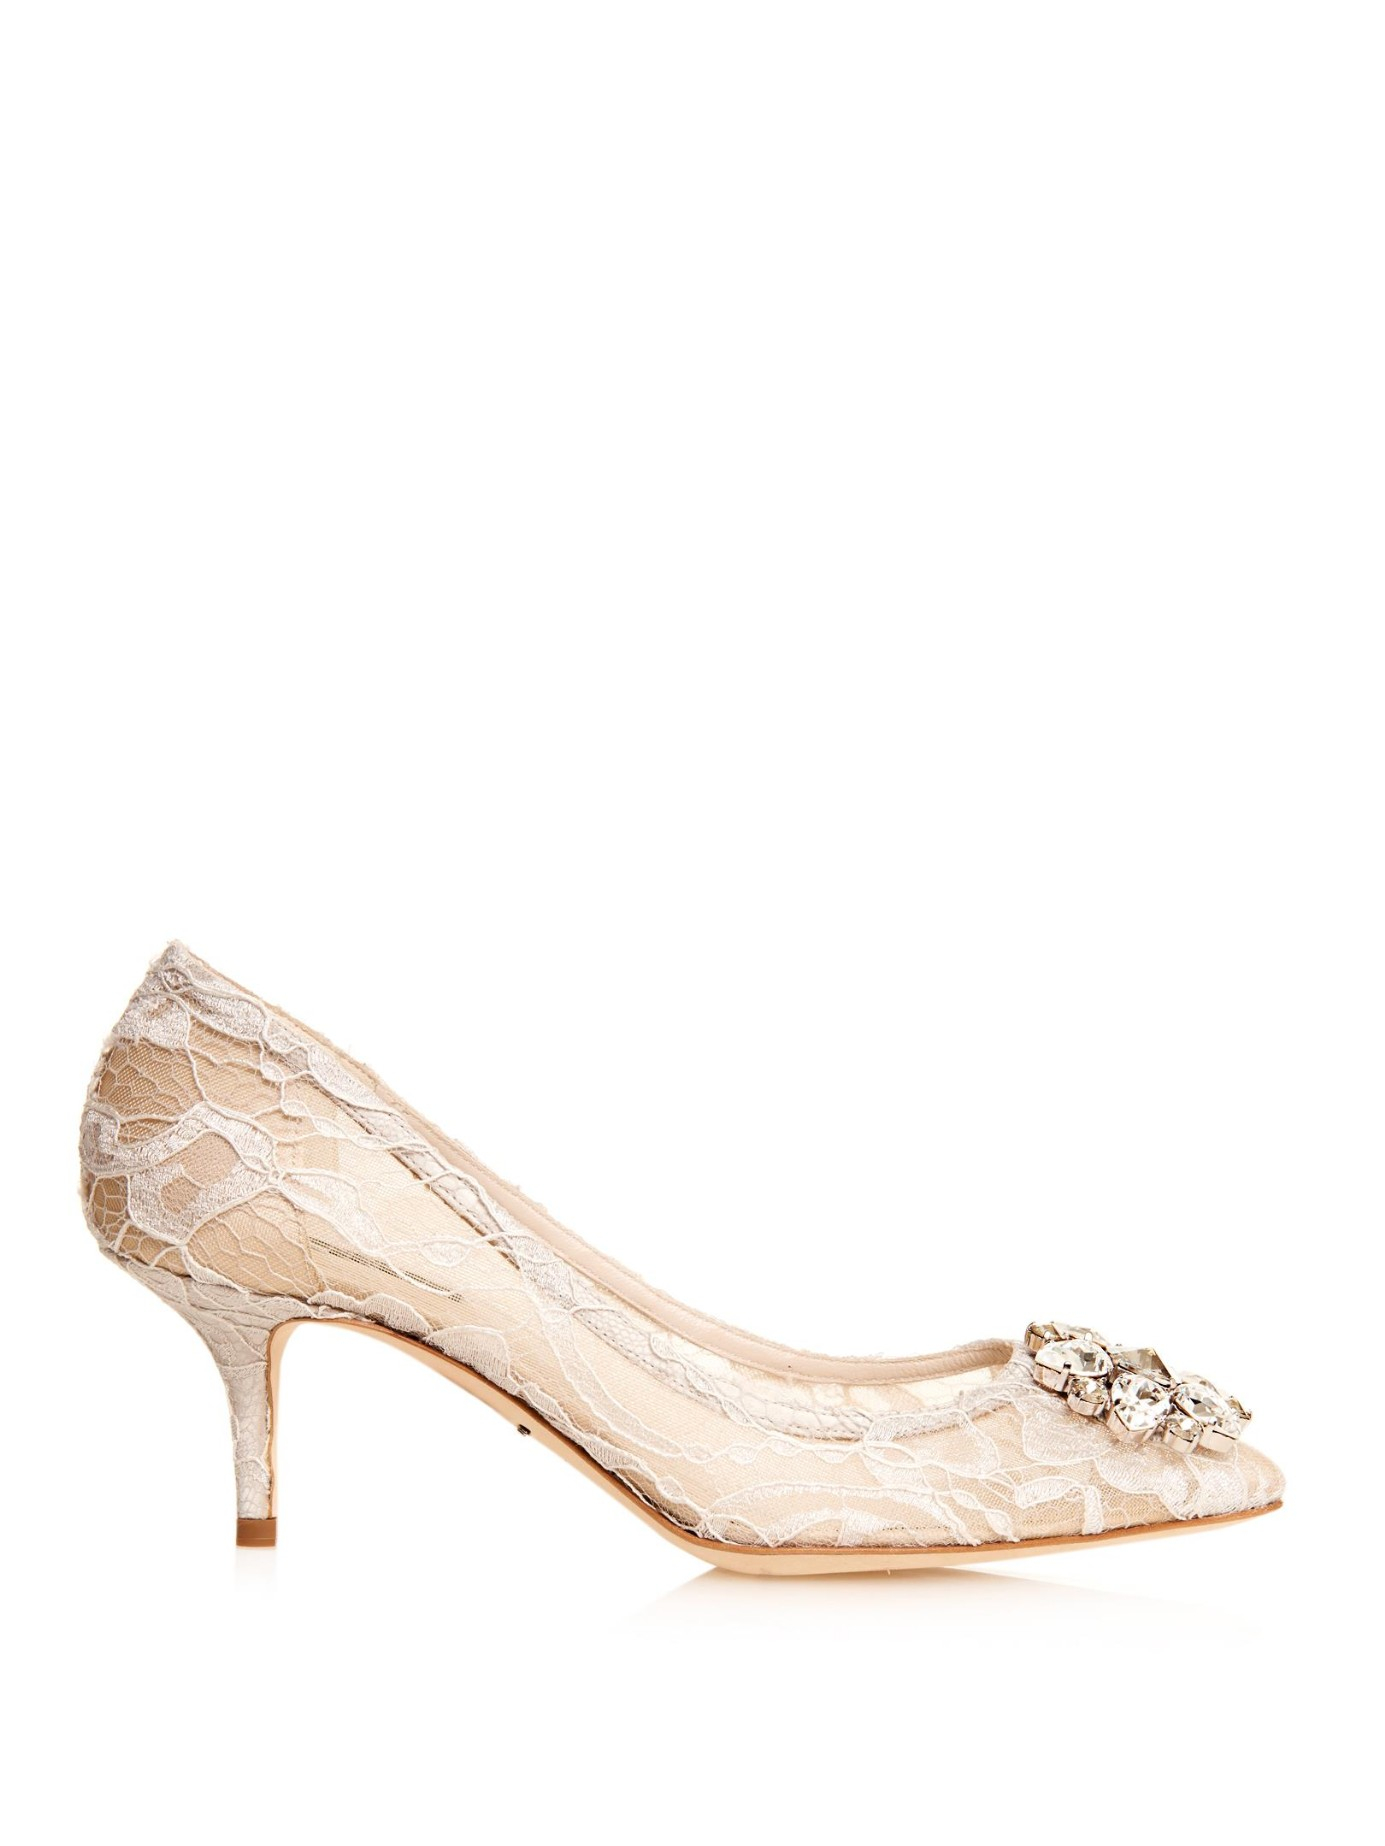 78de383b22e Dolce   Gabbana Embellished Lace Pumps in Natural - Lyst